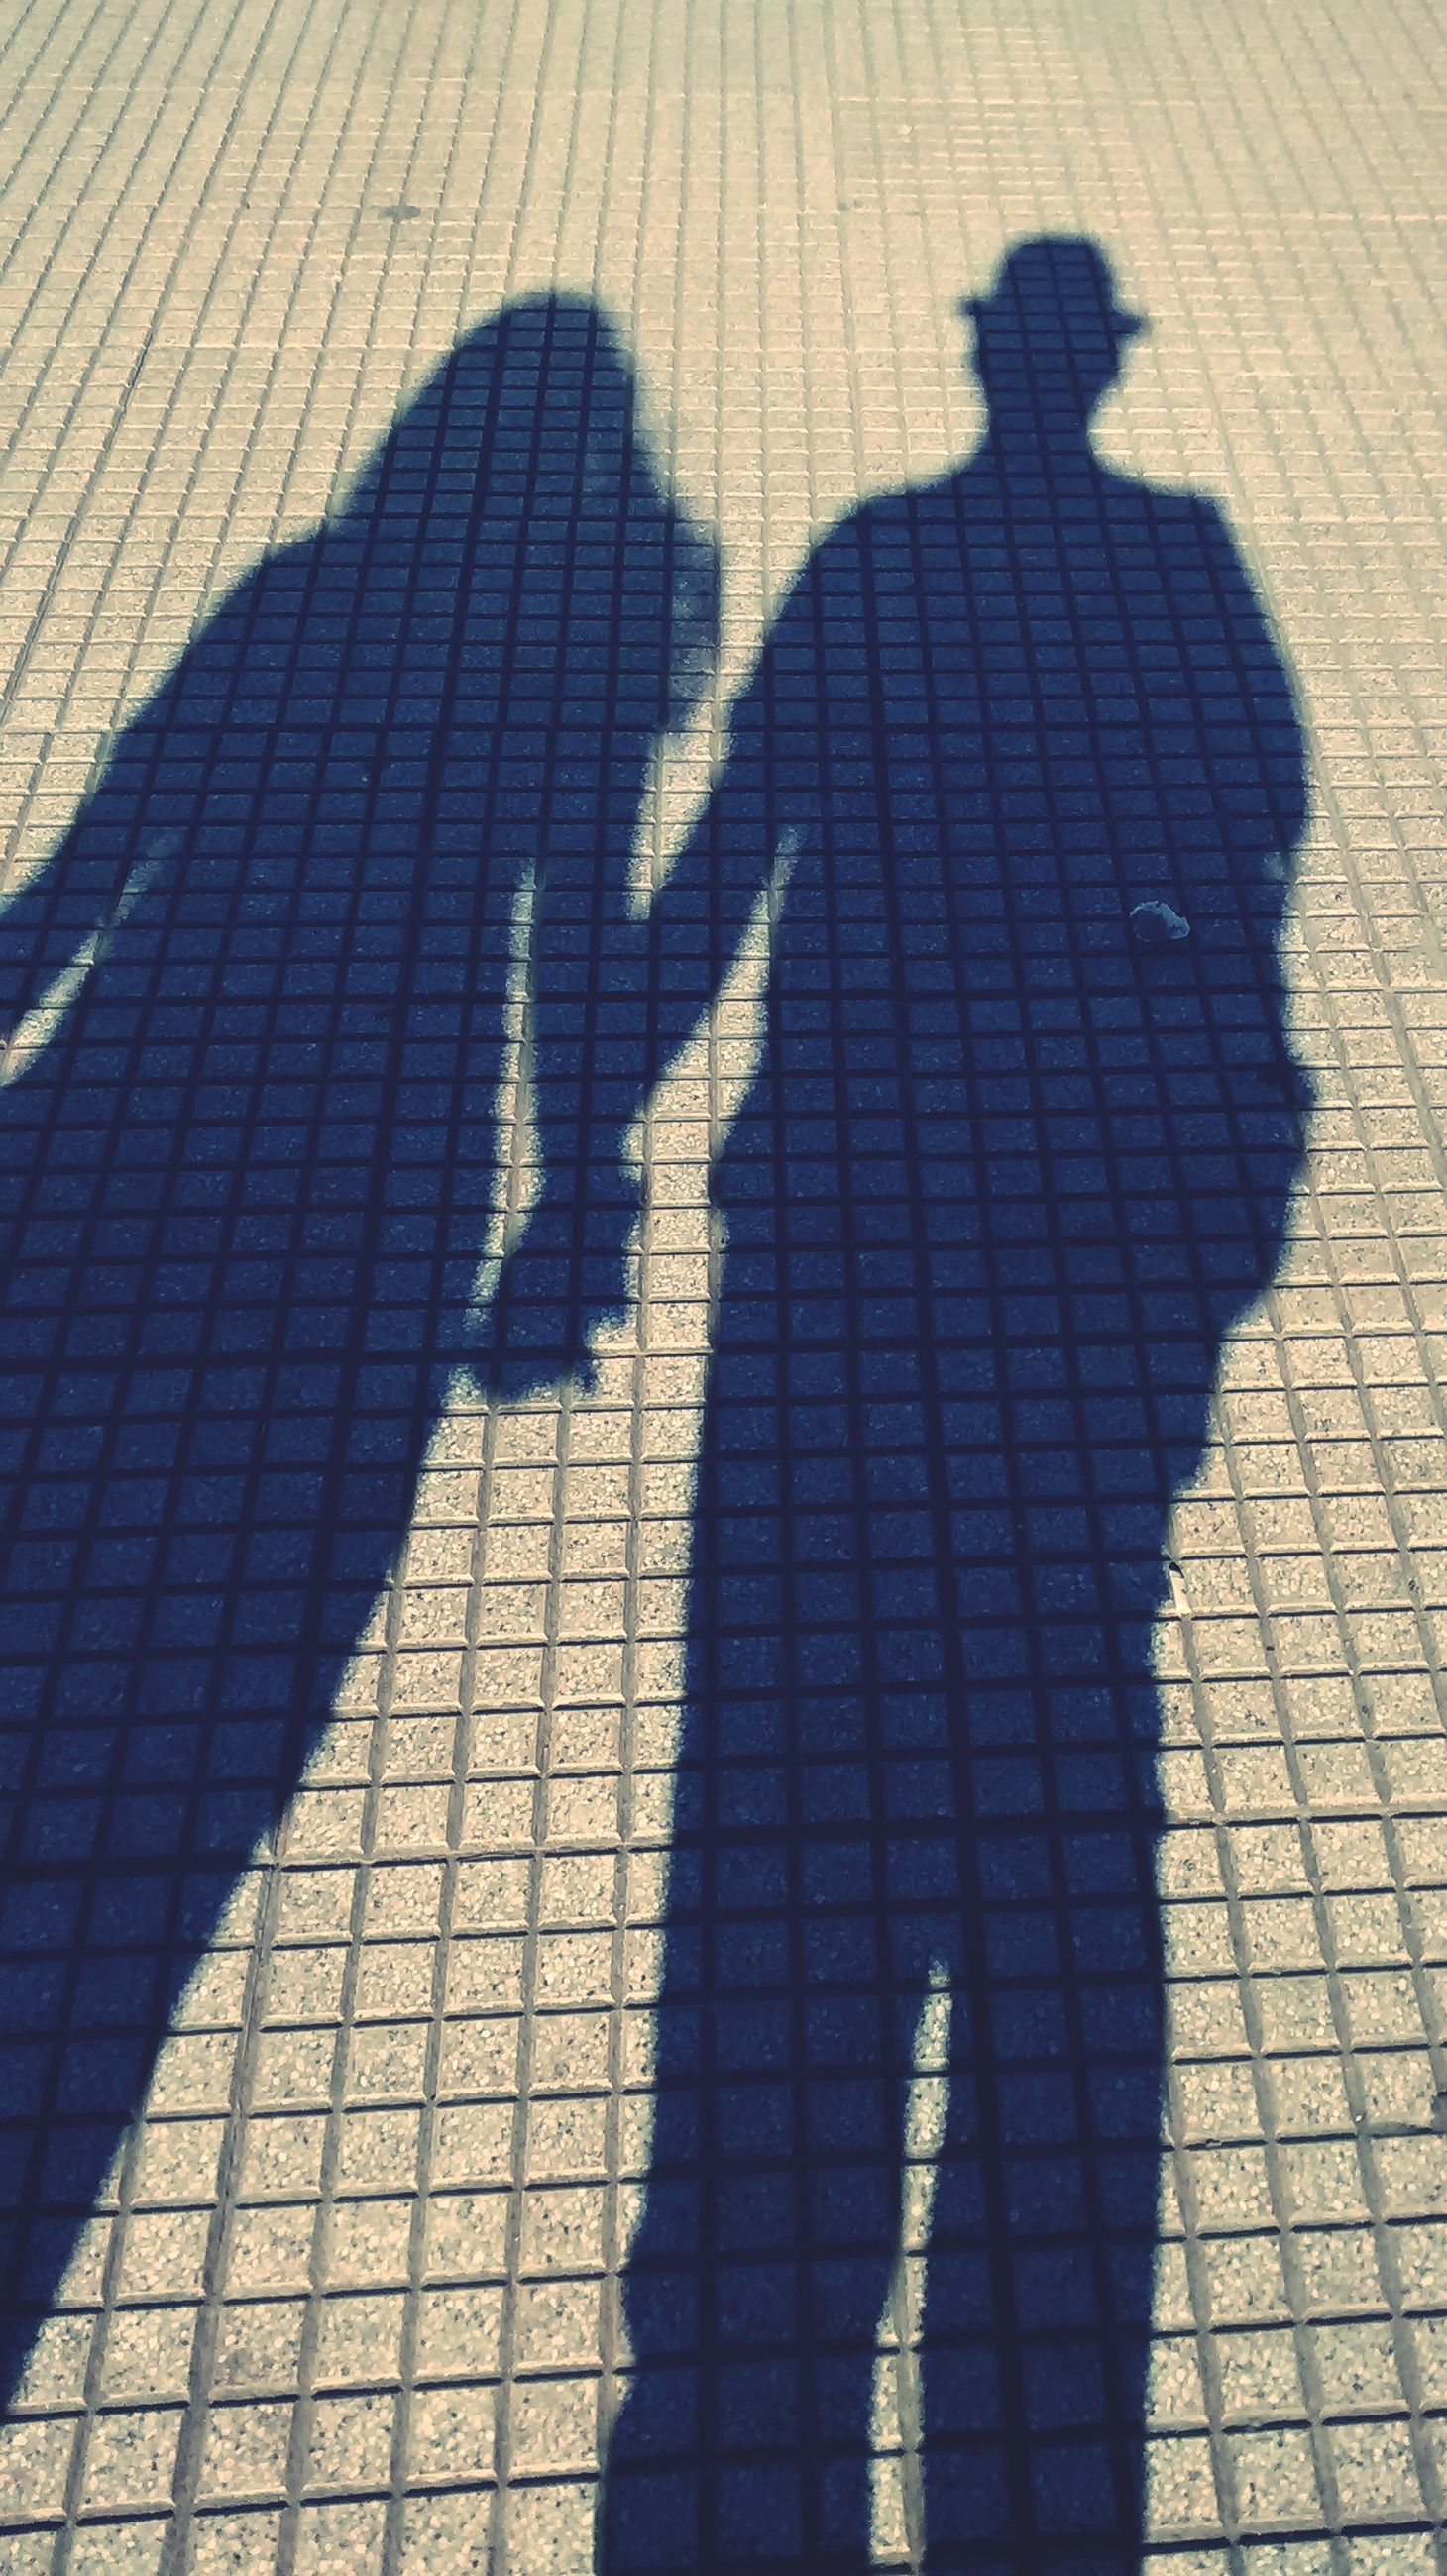 shadow, two people, real people, high angle view, men, togetherness, love, sunlight, bonding, nature, day, lifestyles, focus on shadow, positive emotion, people, adult, women, emotion, couple - relationship, leisure activity, outdoors, long shadow - shadow, paving stone